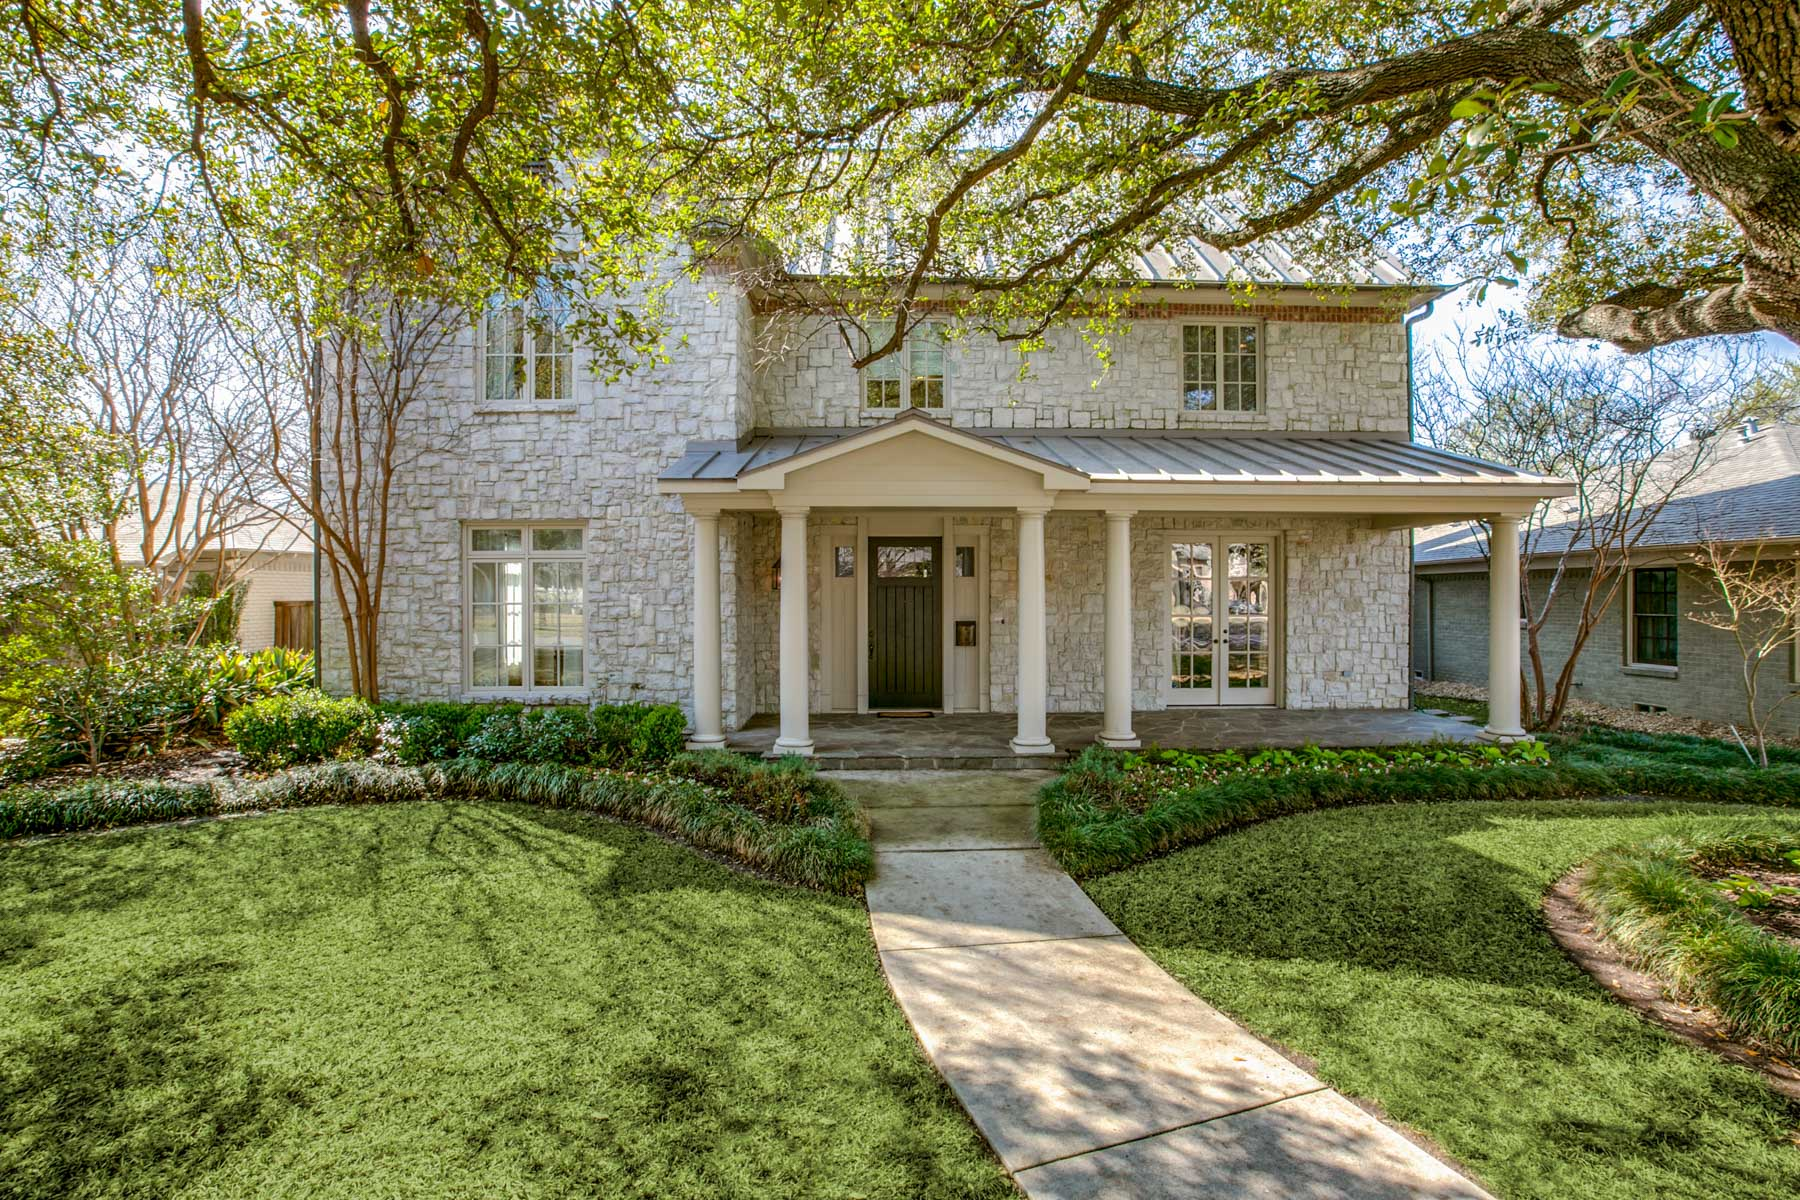 Single Family Home for Sale at Spacious, Tailored Home 7518 Colgate Avenue, Dallas, Texas, 75225 United States